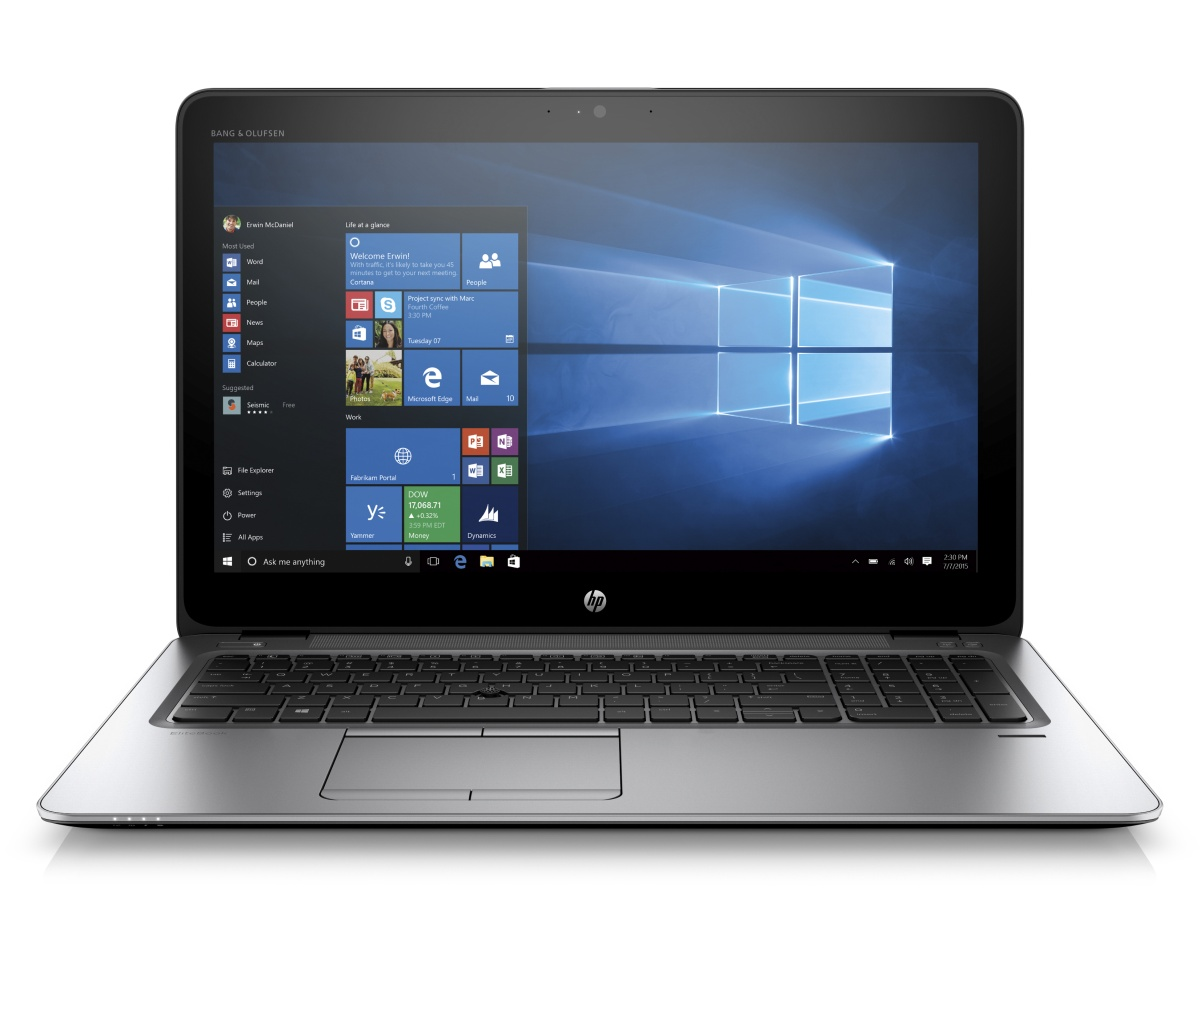 HP EliteBook 755 G3 A10-8700B 15,6 HD CAM, 4GB, 500GB 7.2, WiFi ac, BT, FpR, Win10Pro DWN